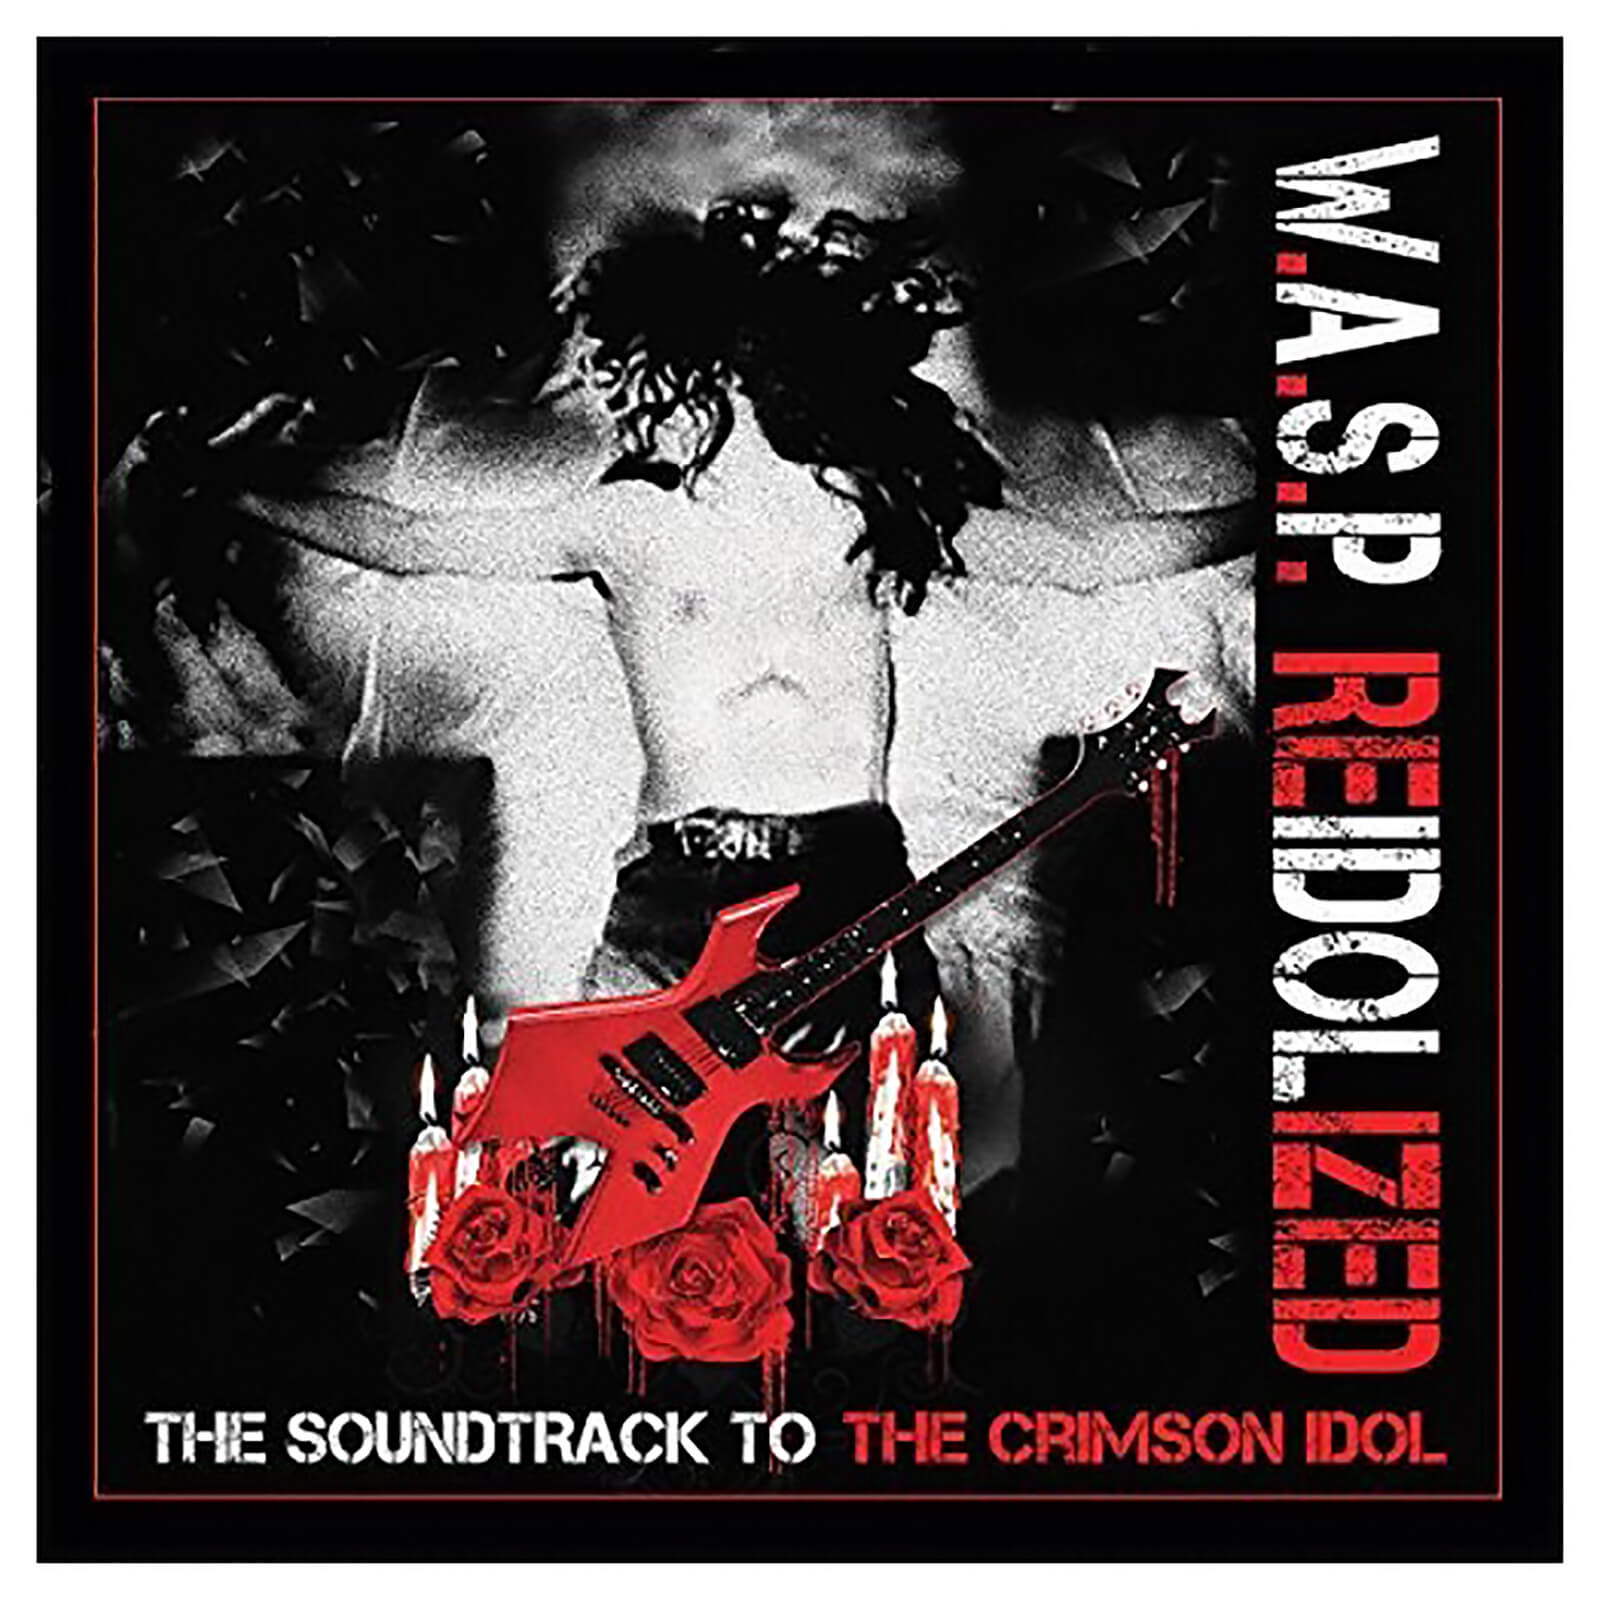 W.A.S.P. - Reidolized (Soundtrack To The Crimson Idol) - Vinyl